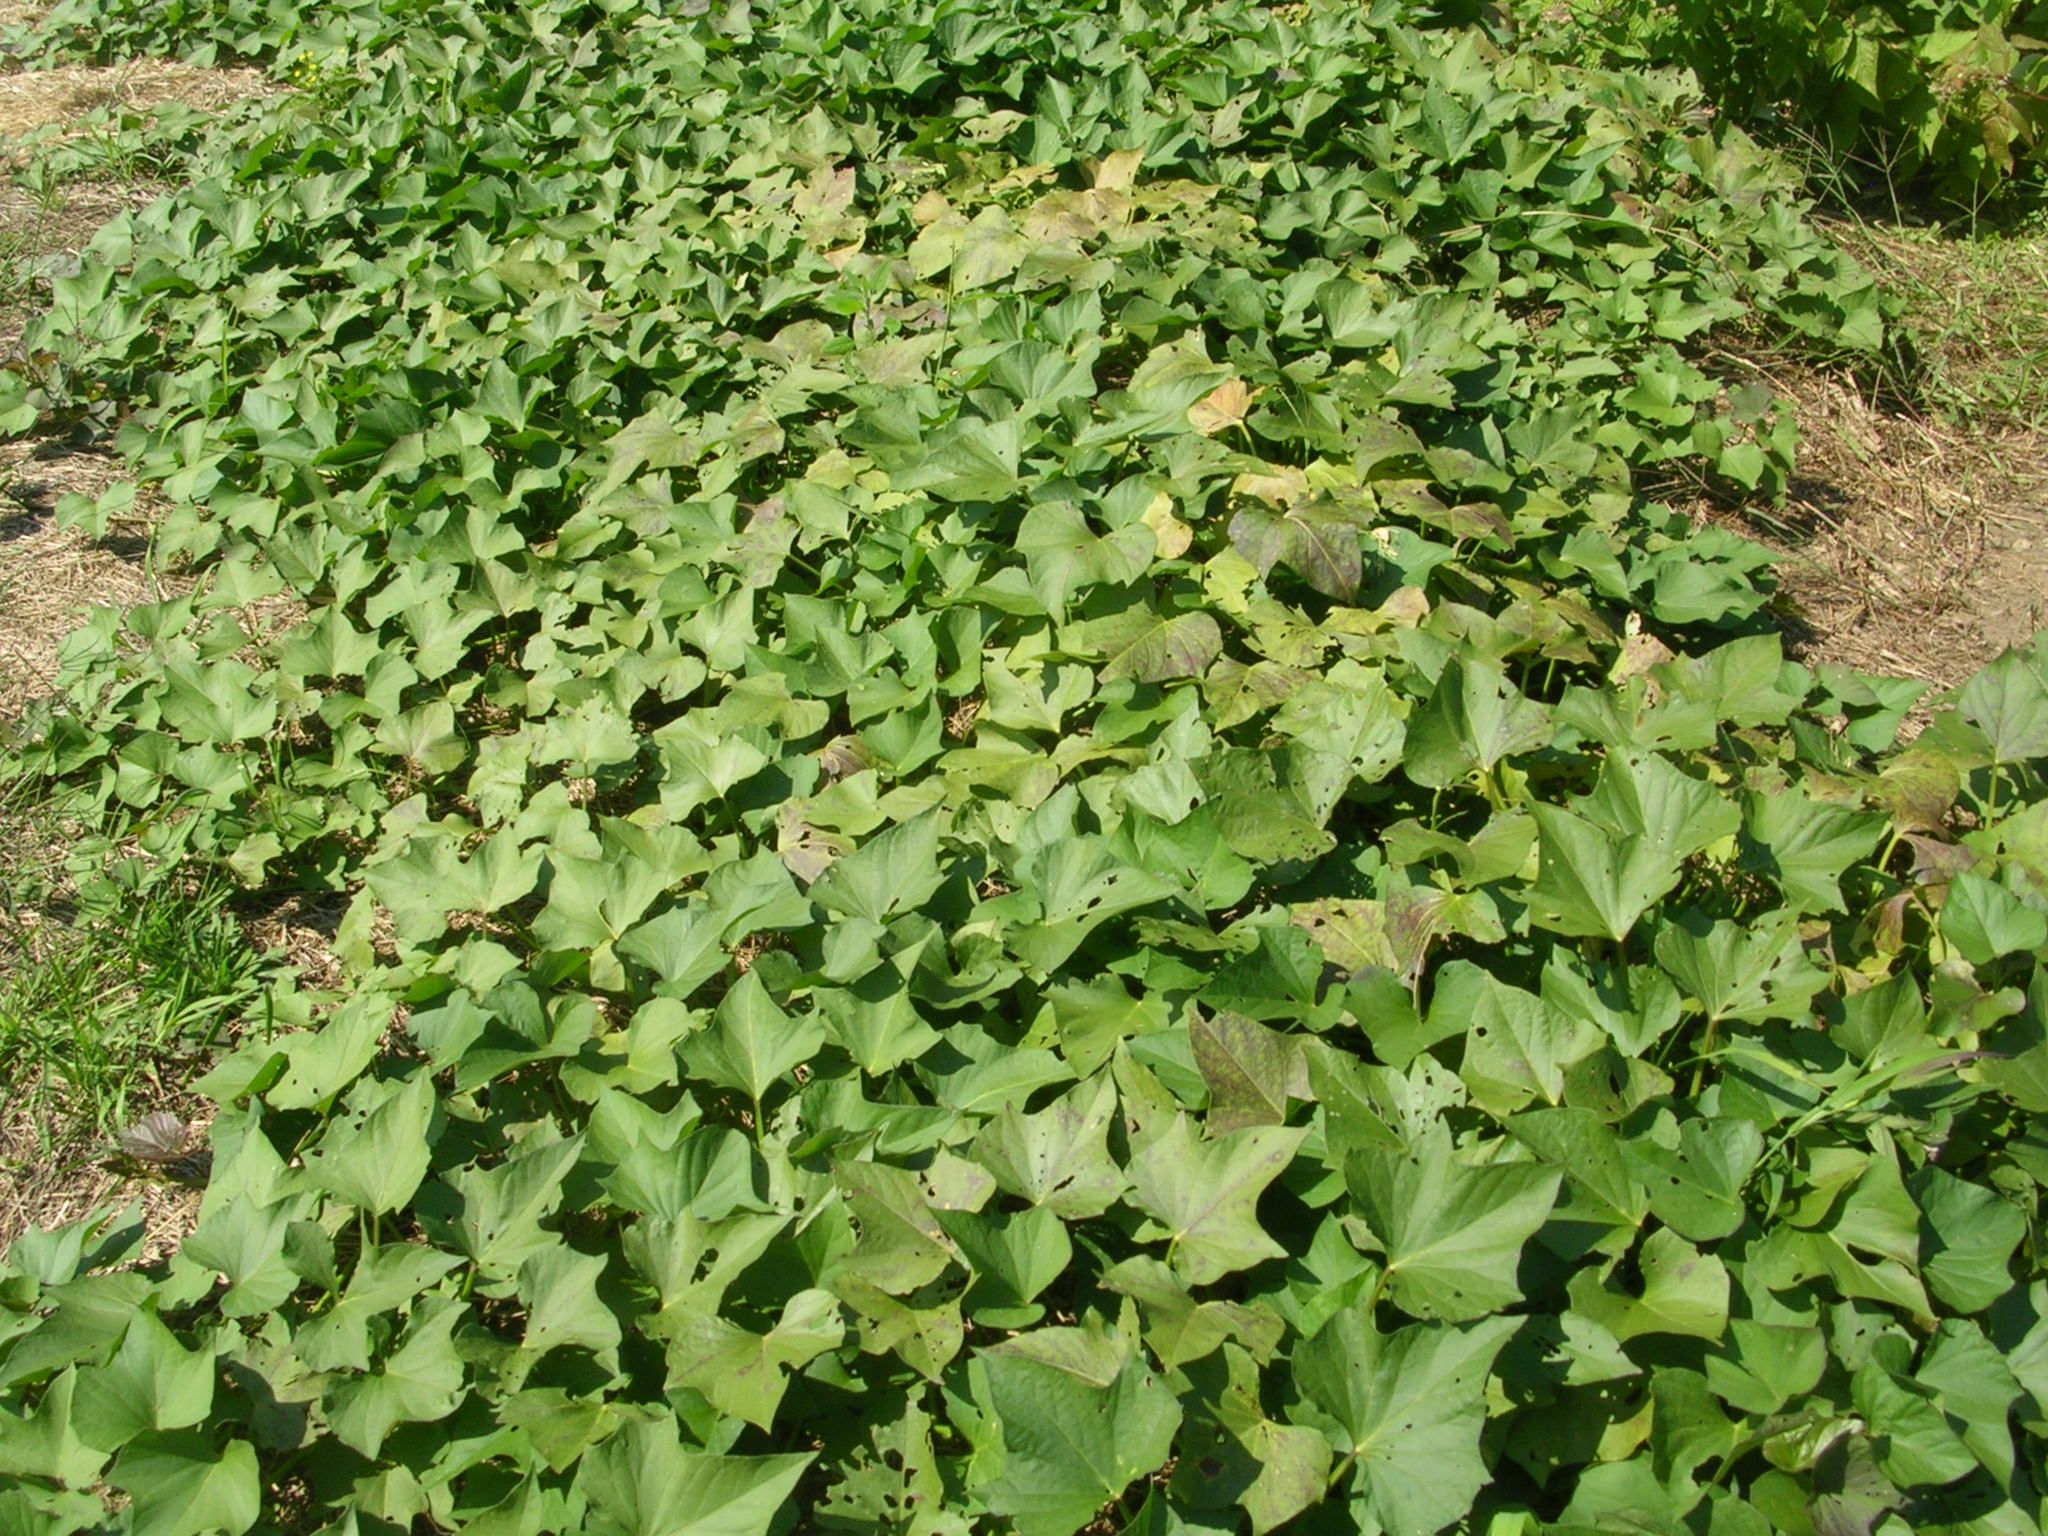 ...  sweet potatoes are somewhat drought tolerant, keep the young plants well watered until they're established.